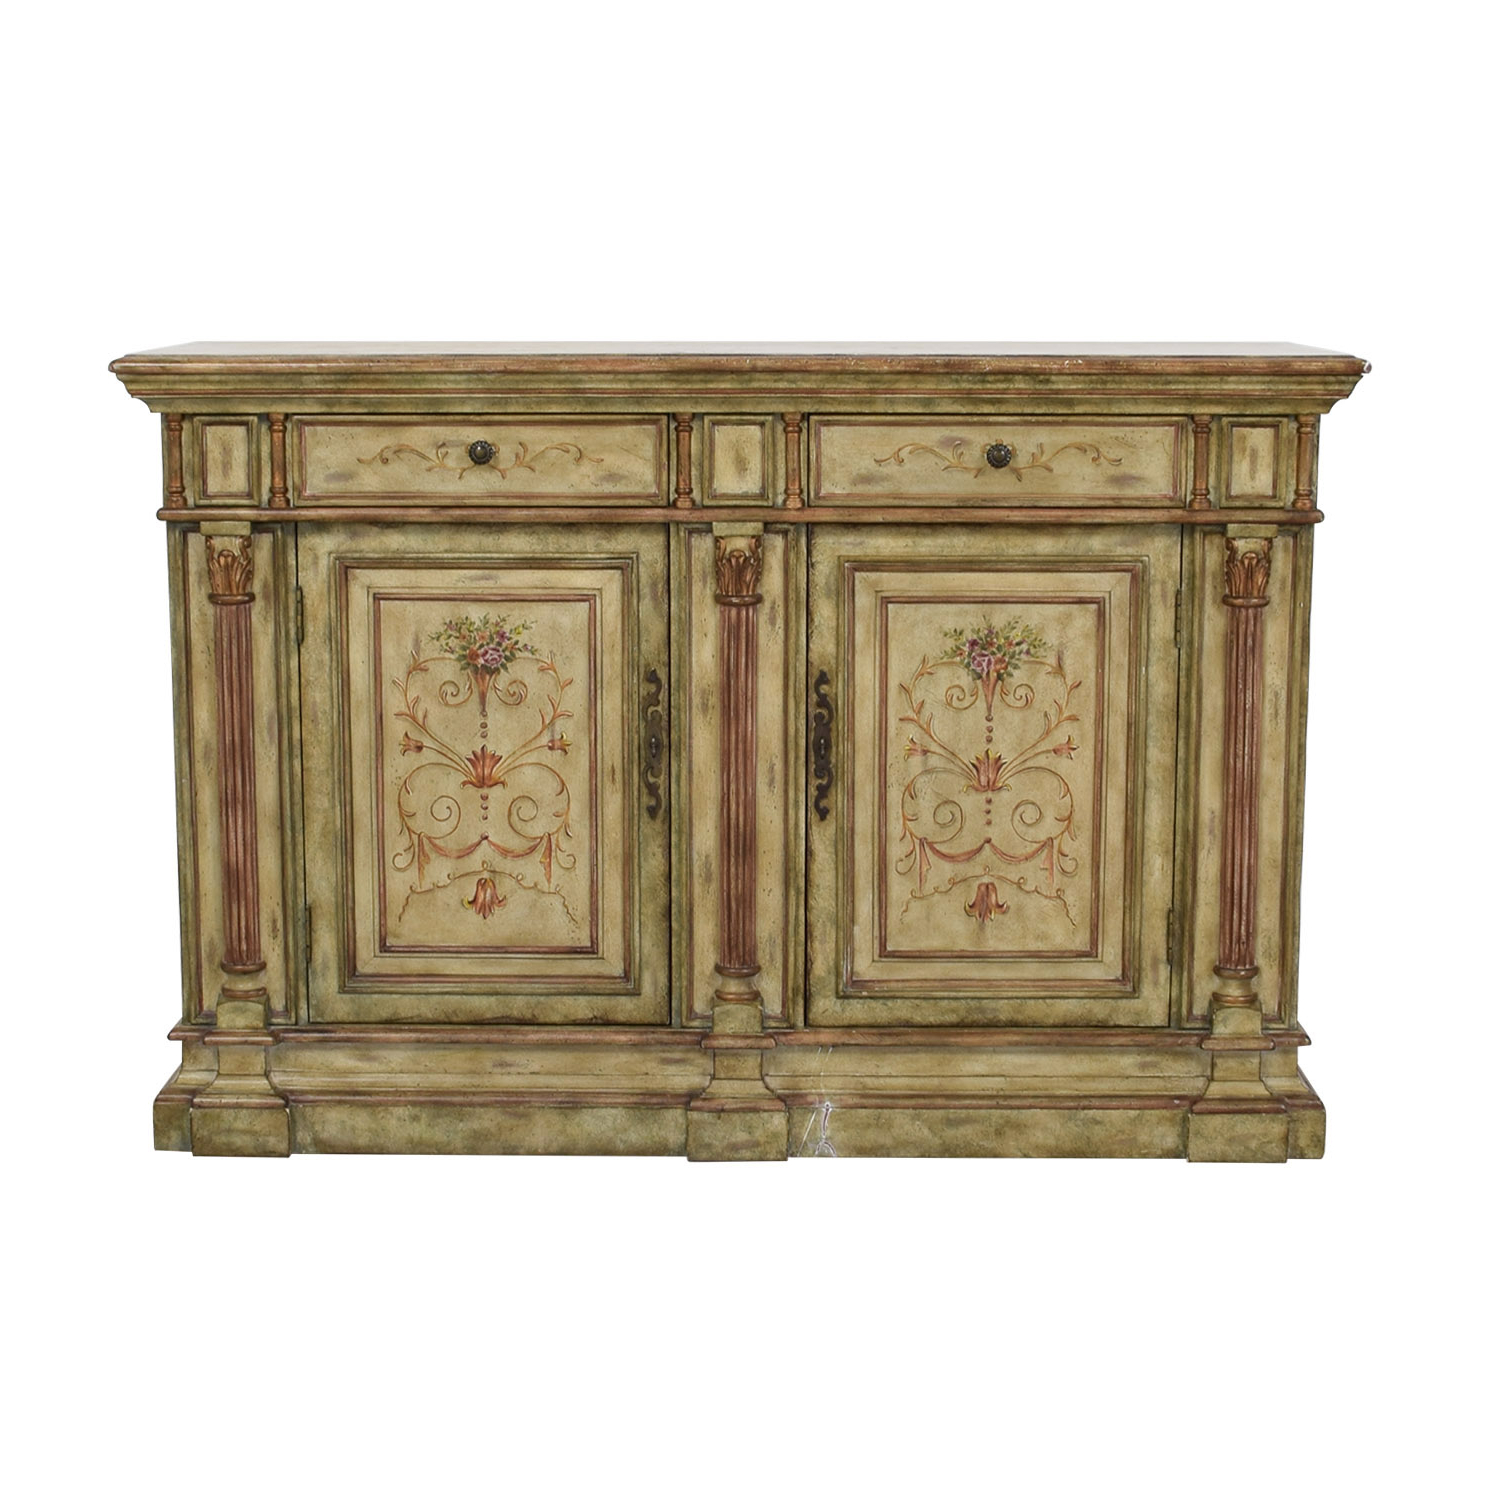 78% Off – Hooker Furniture Hooker Furniture Seven Seas Creme Scroll Painted Sideboard / Storage Pertaining To Seven Seas Asian Sideboards (View 3 of 20)